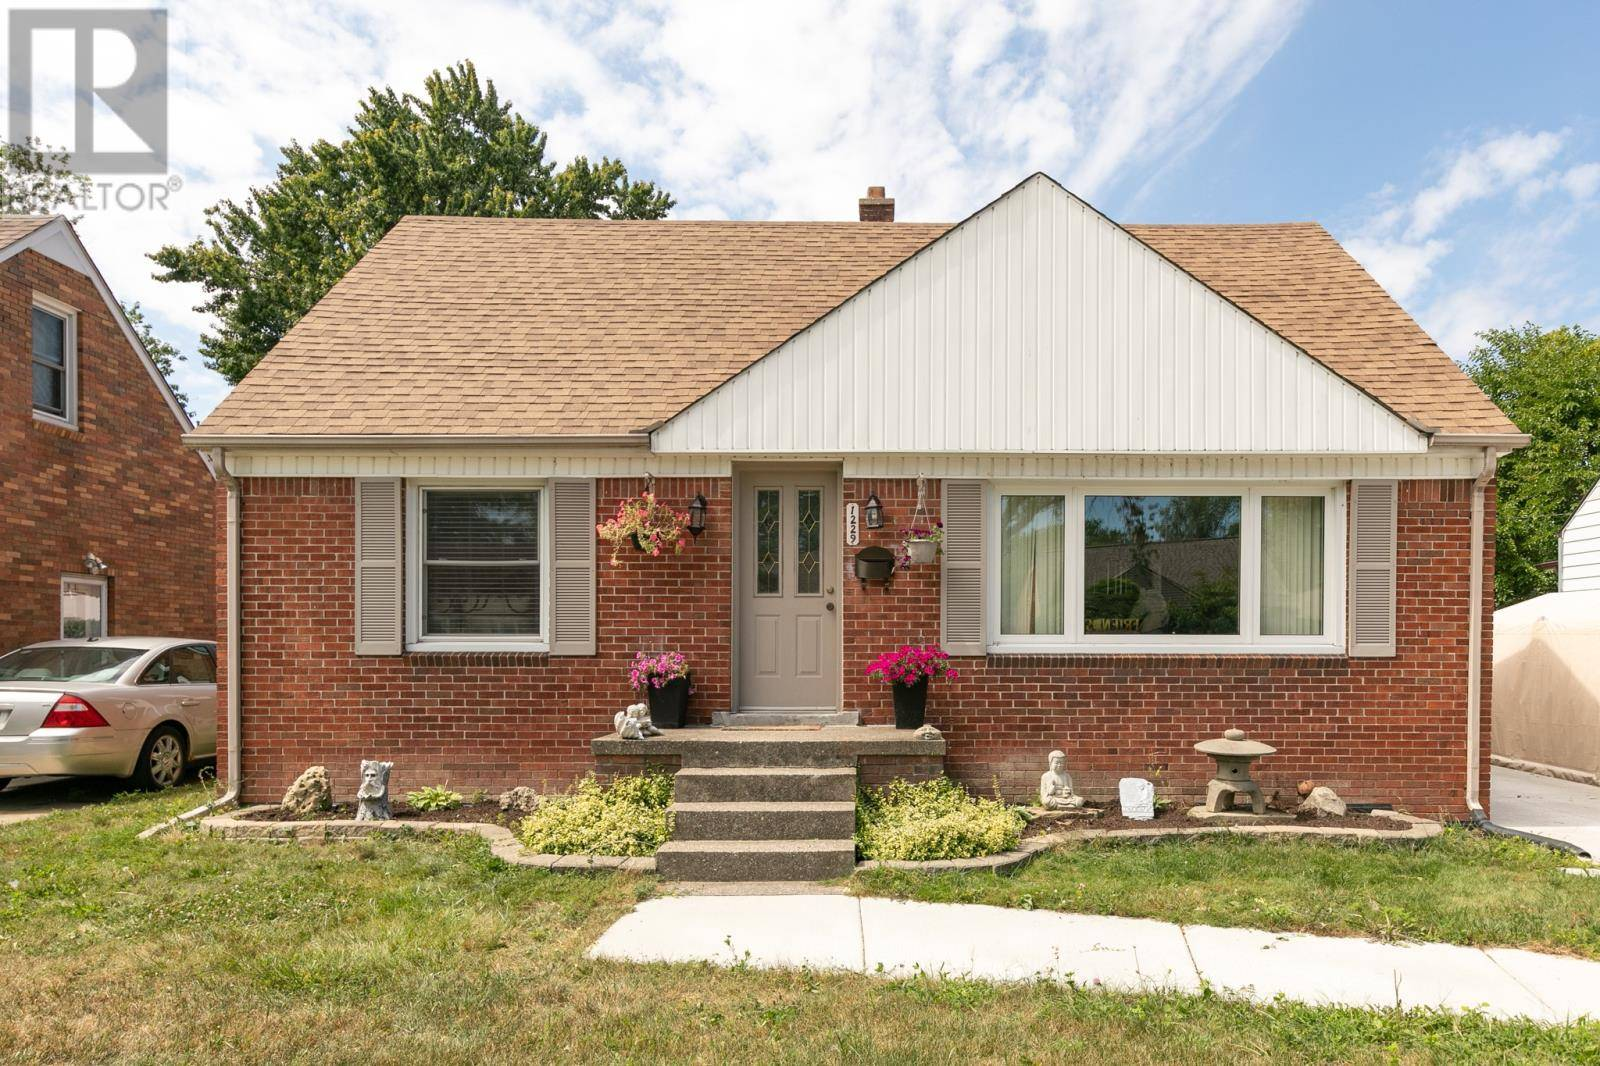 House for sale at 1229 Fairview Blvd Windsor Ontario - MLS: 19023727